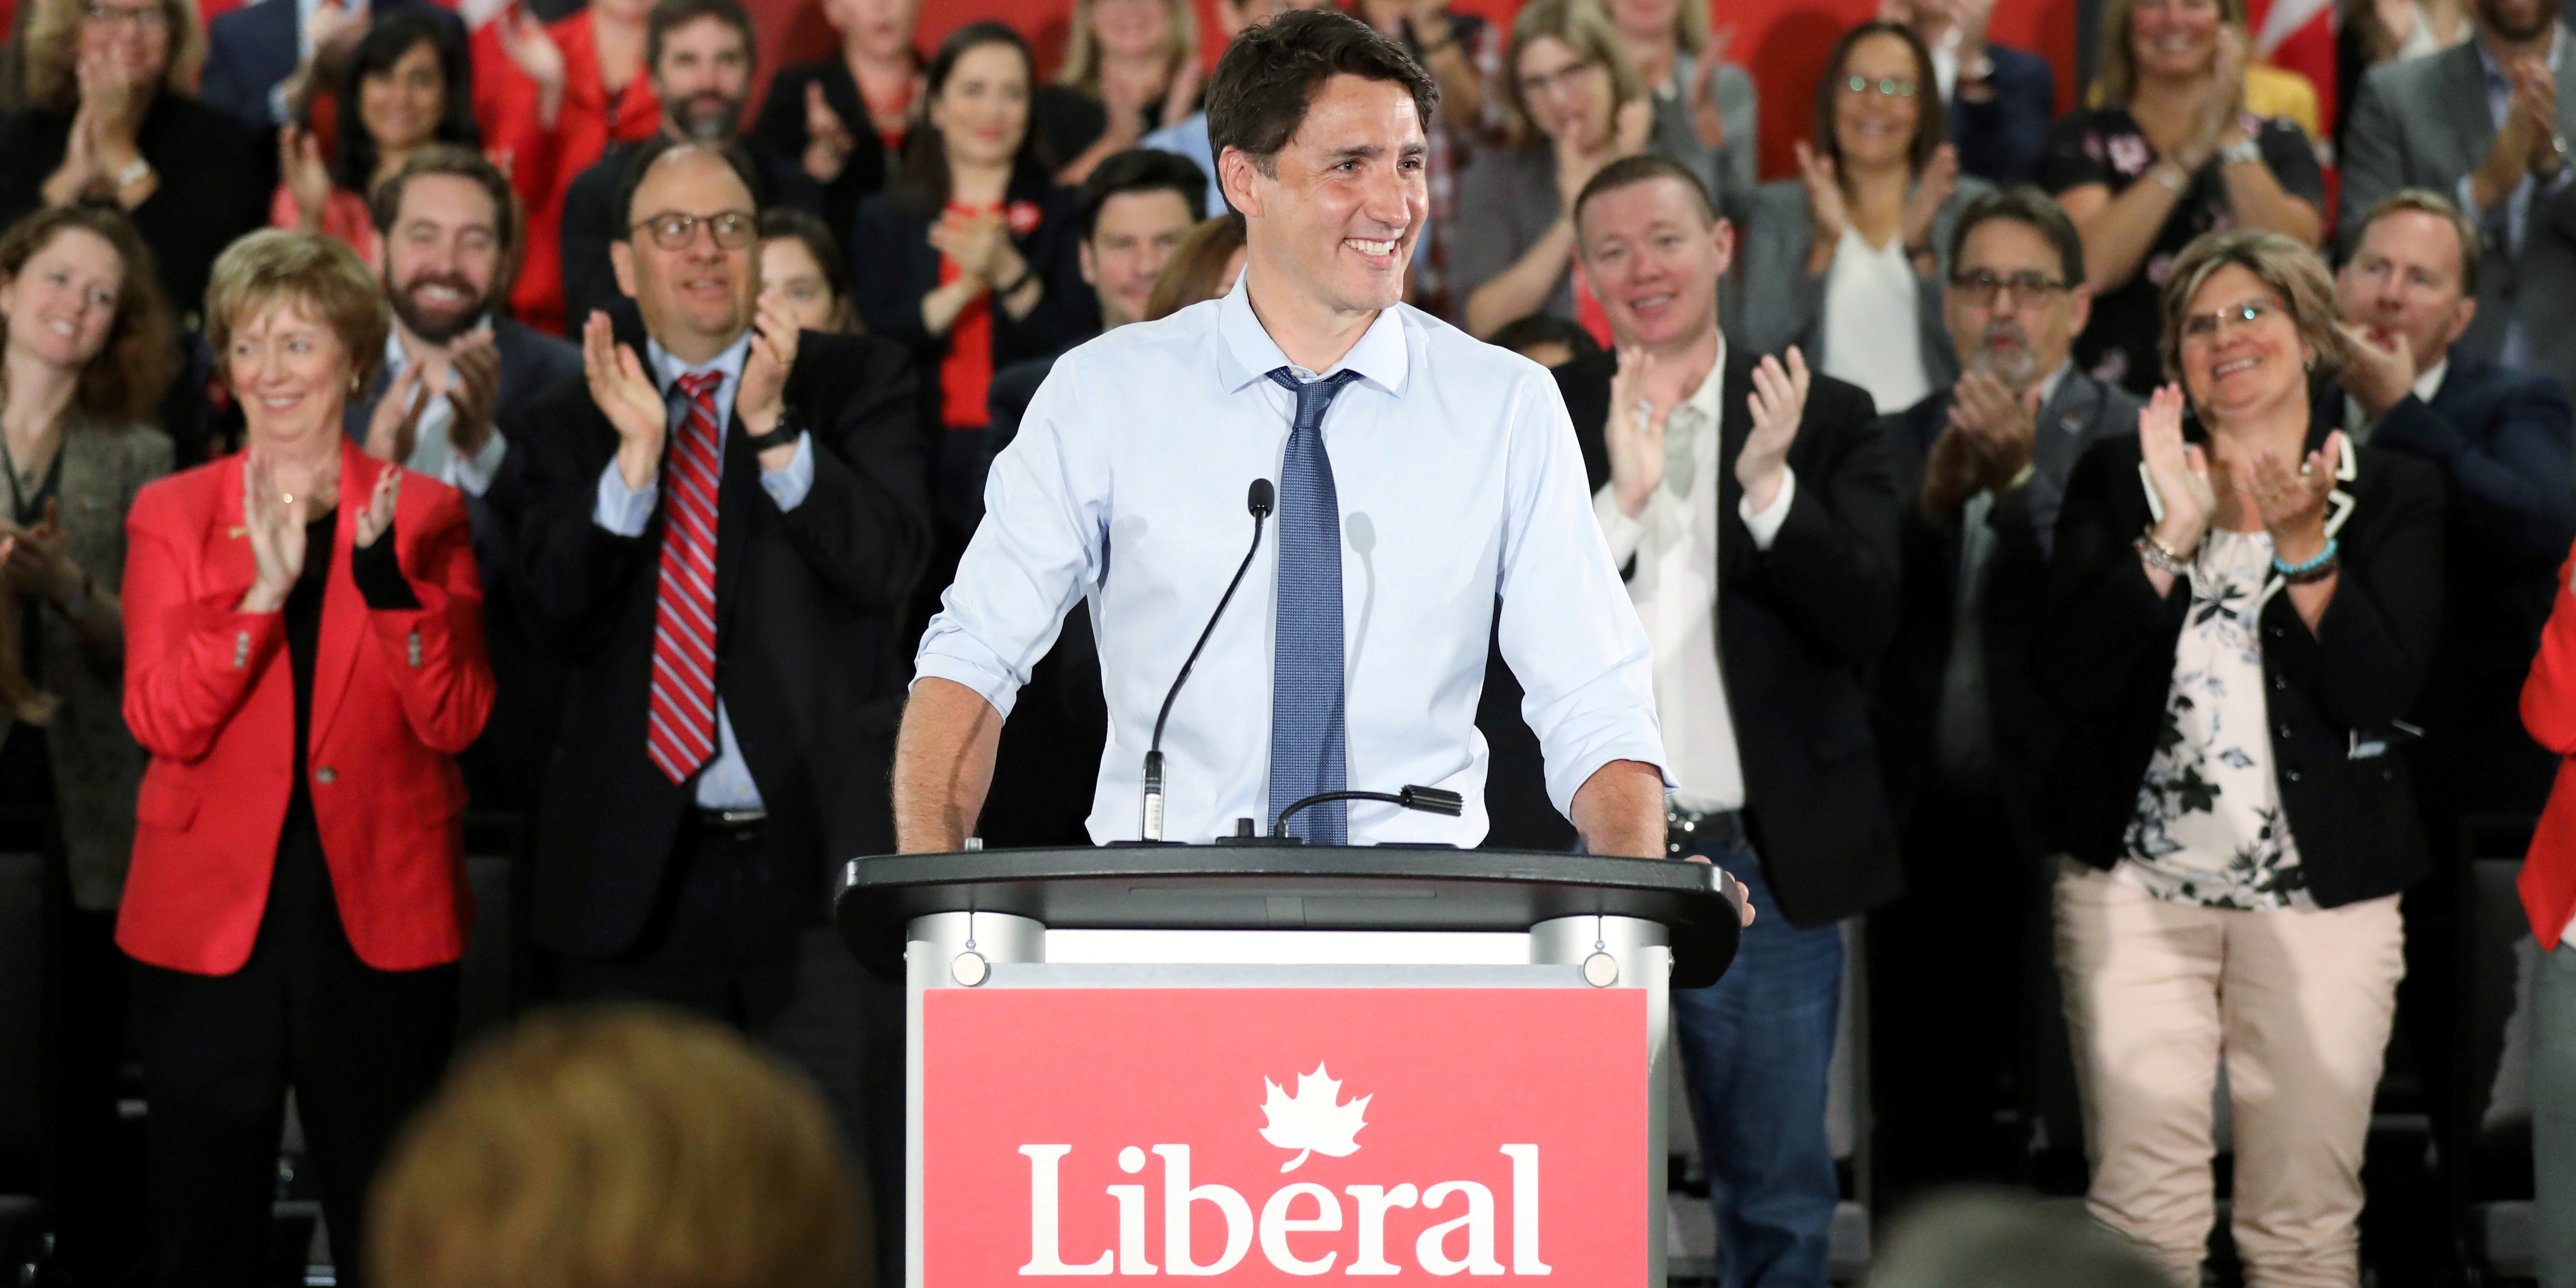 FILE PHOTO: Canada's Prime Minister Justin Trudeau receives a standing ovation while addressing Liberal Party candidates in Ottawa, Ontario, Canada, July 31, 2019. REUTERS/Chris Wattie/File Photo